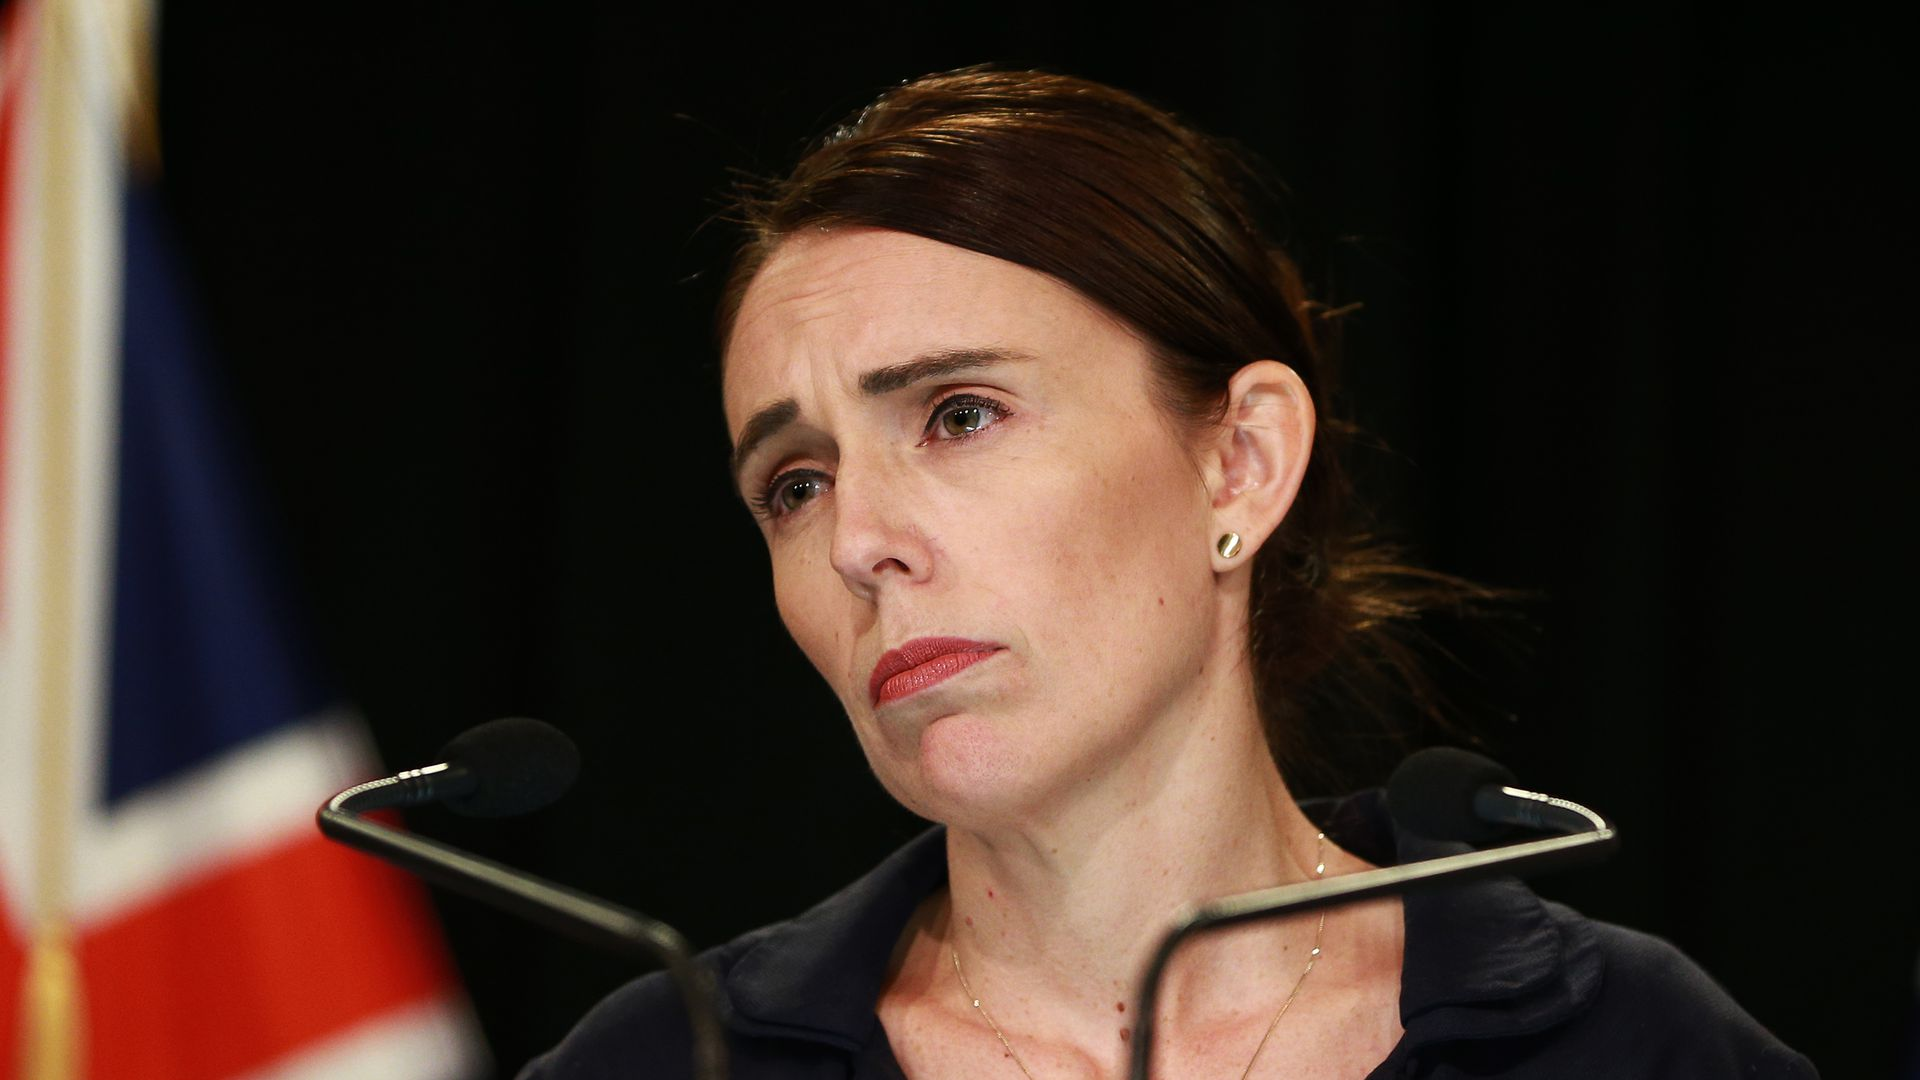 Jacinda Ardern says the live-stream issue goes well beyond what happened in New Zealand.